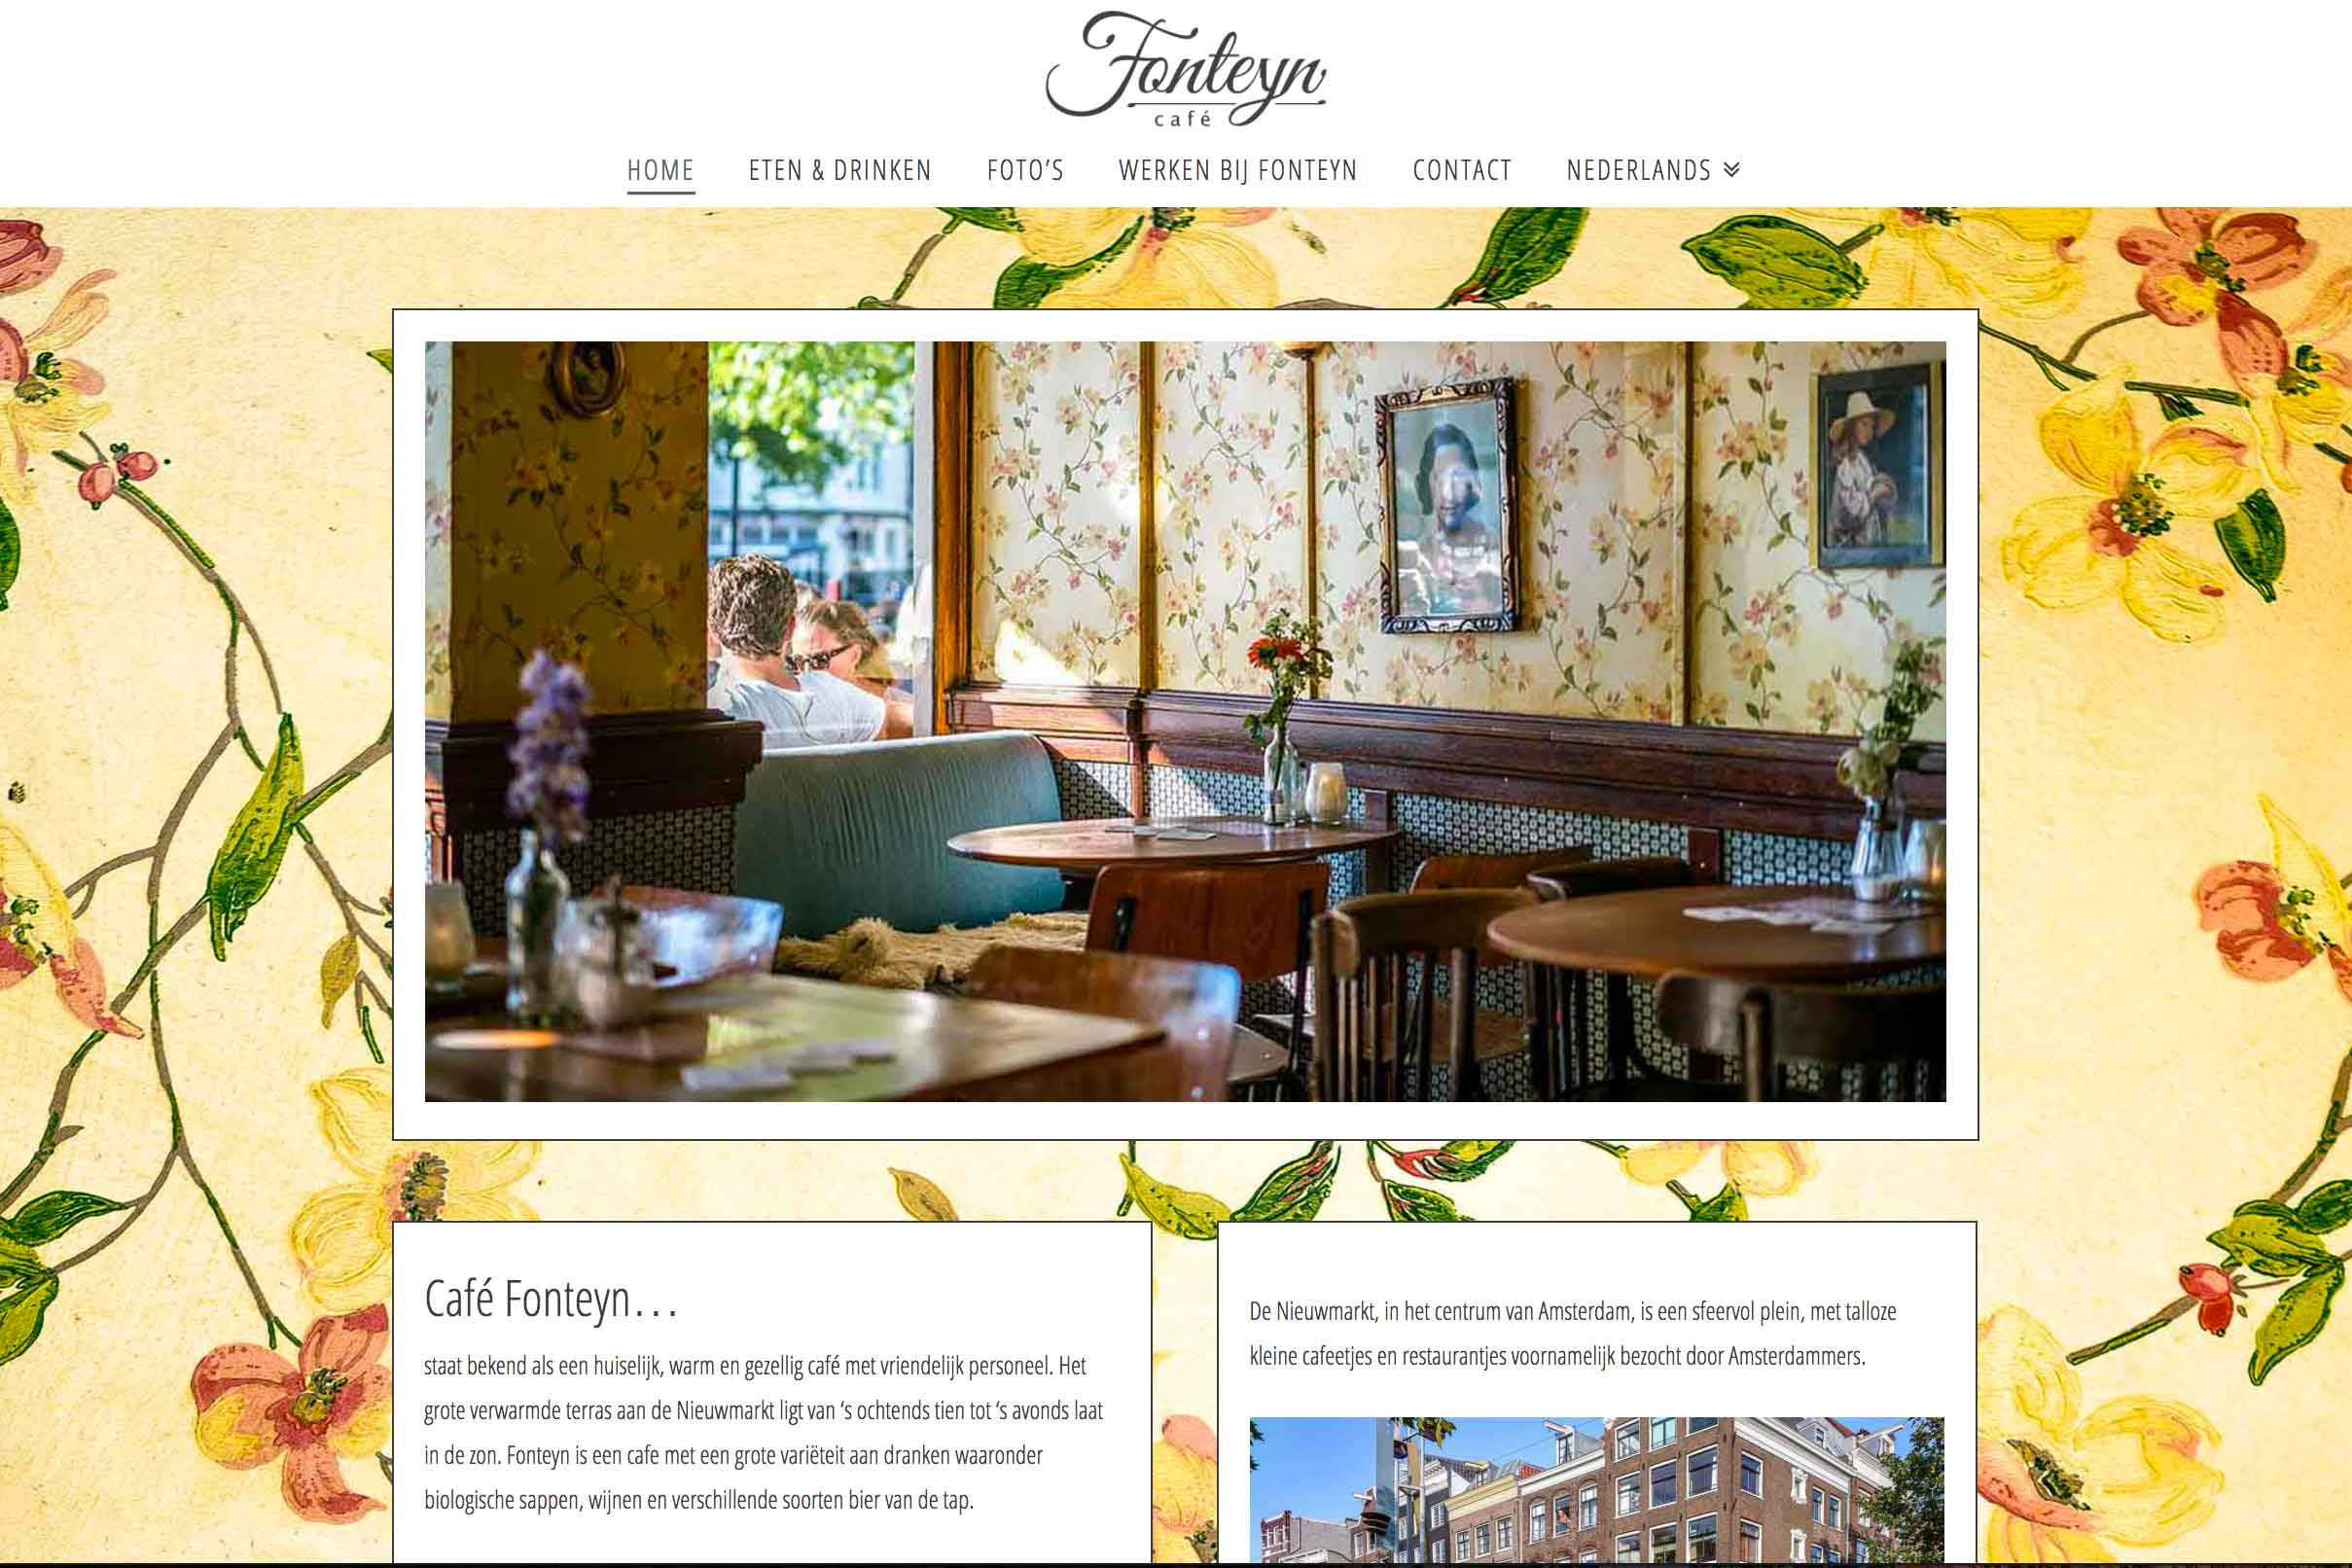 marleenvisser_digital_productions_cafe_fonteyn_website